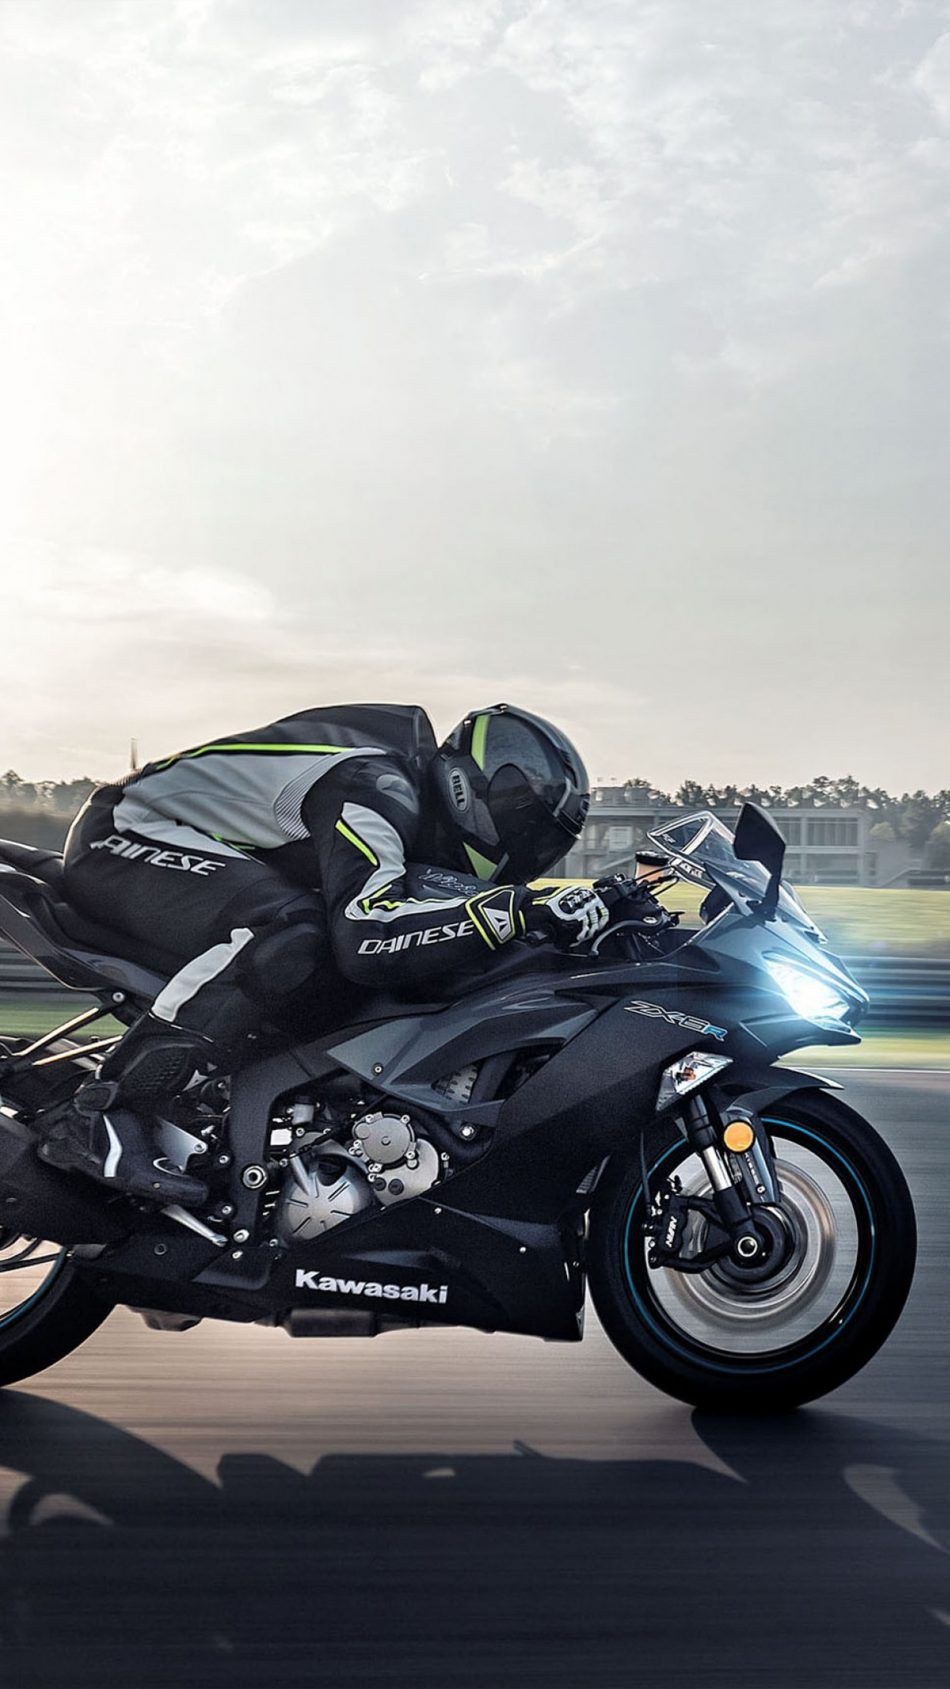 Kawasaki Ninja Zx 6r 2019 Race Track Bike Wallpapers